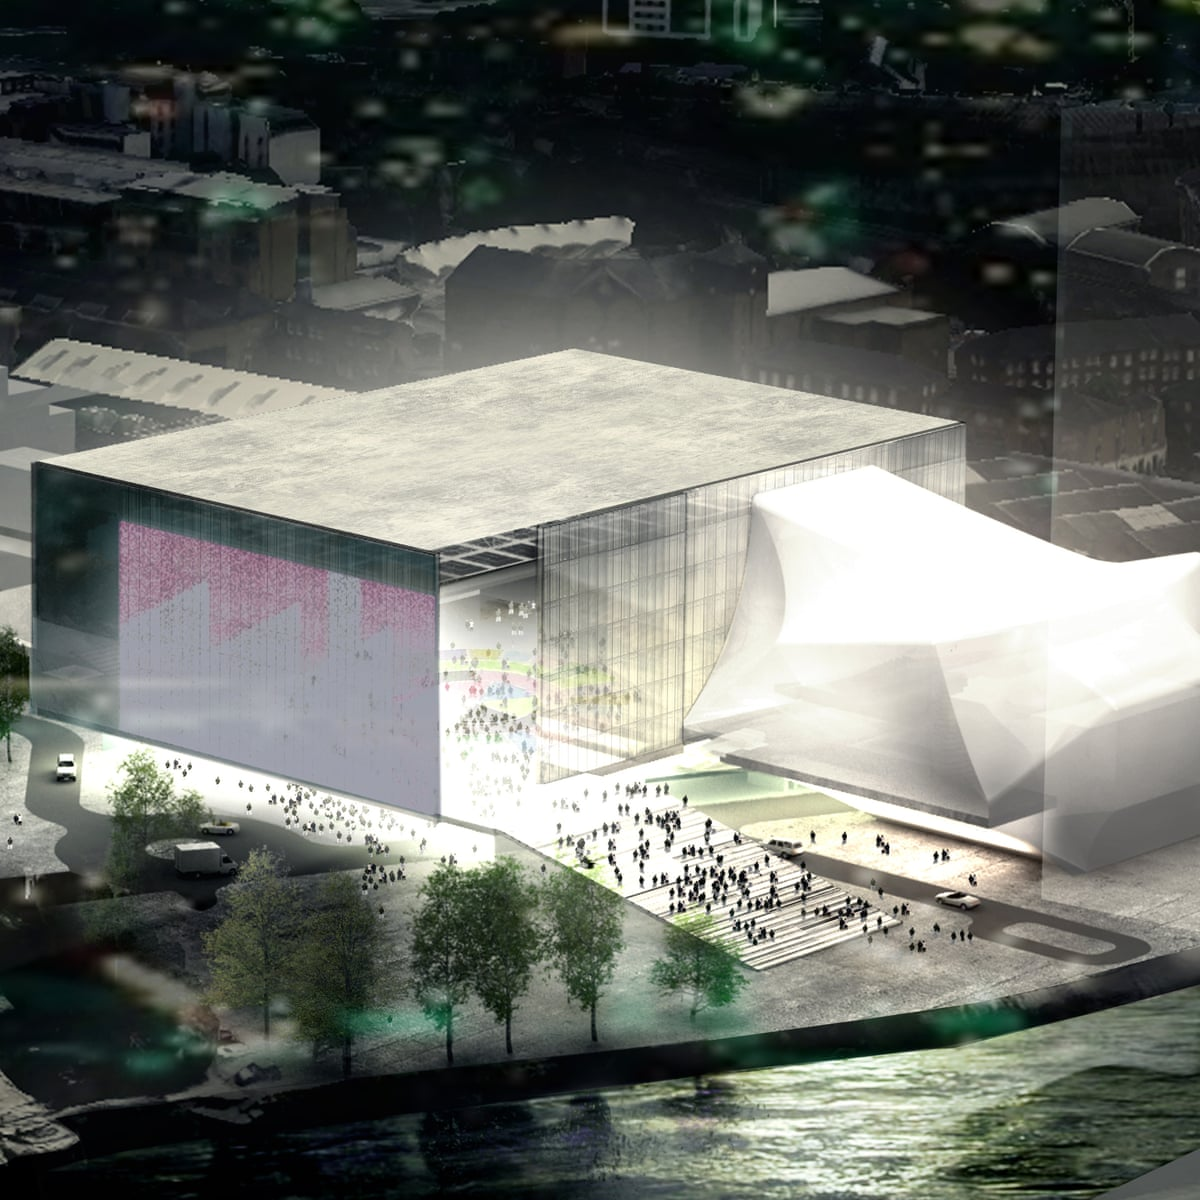 Rem Koolhaas Wins Factory Design Project As Manchester Goes Dutch Manchester The Guardian